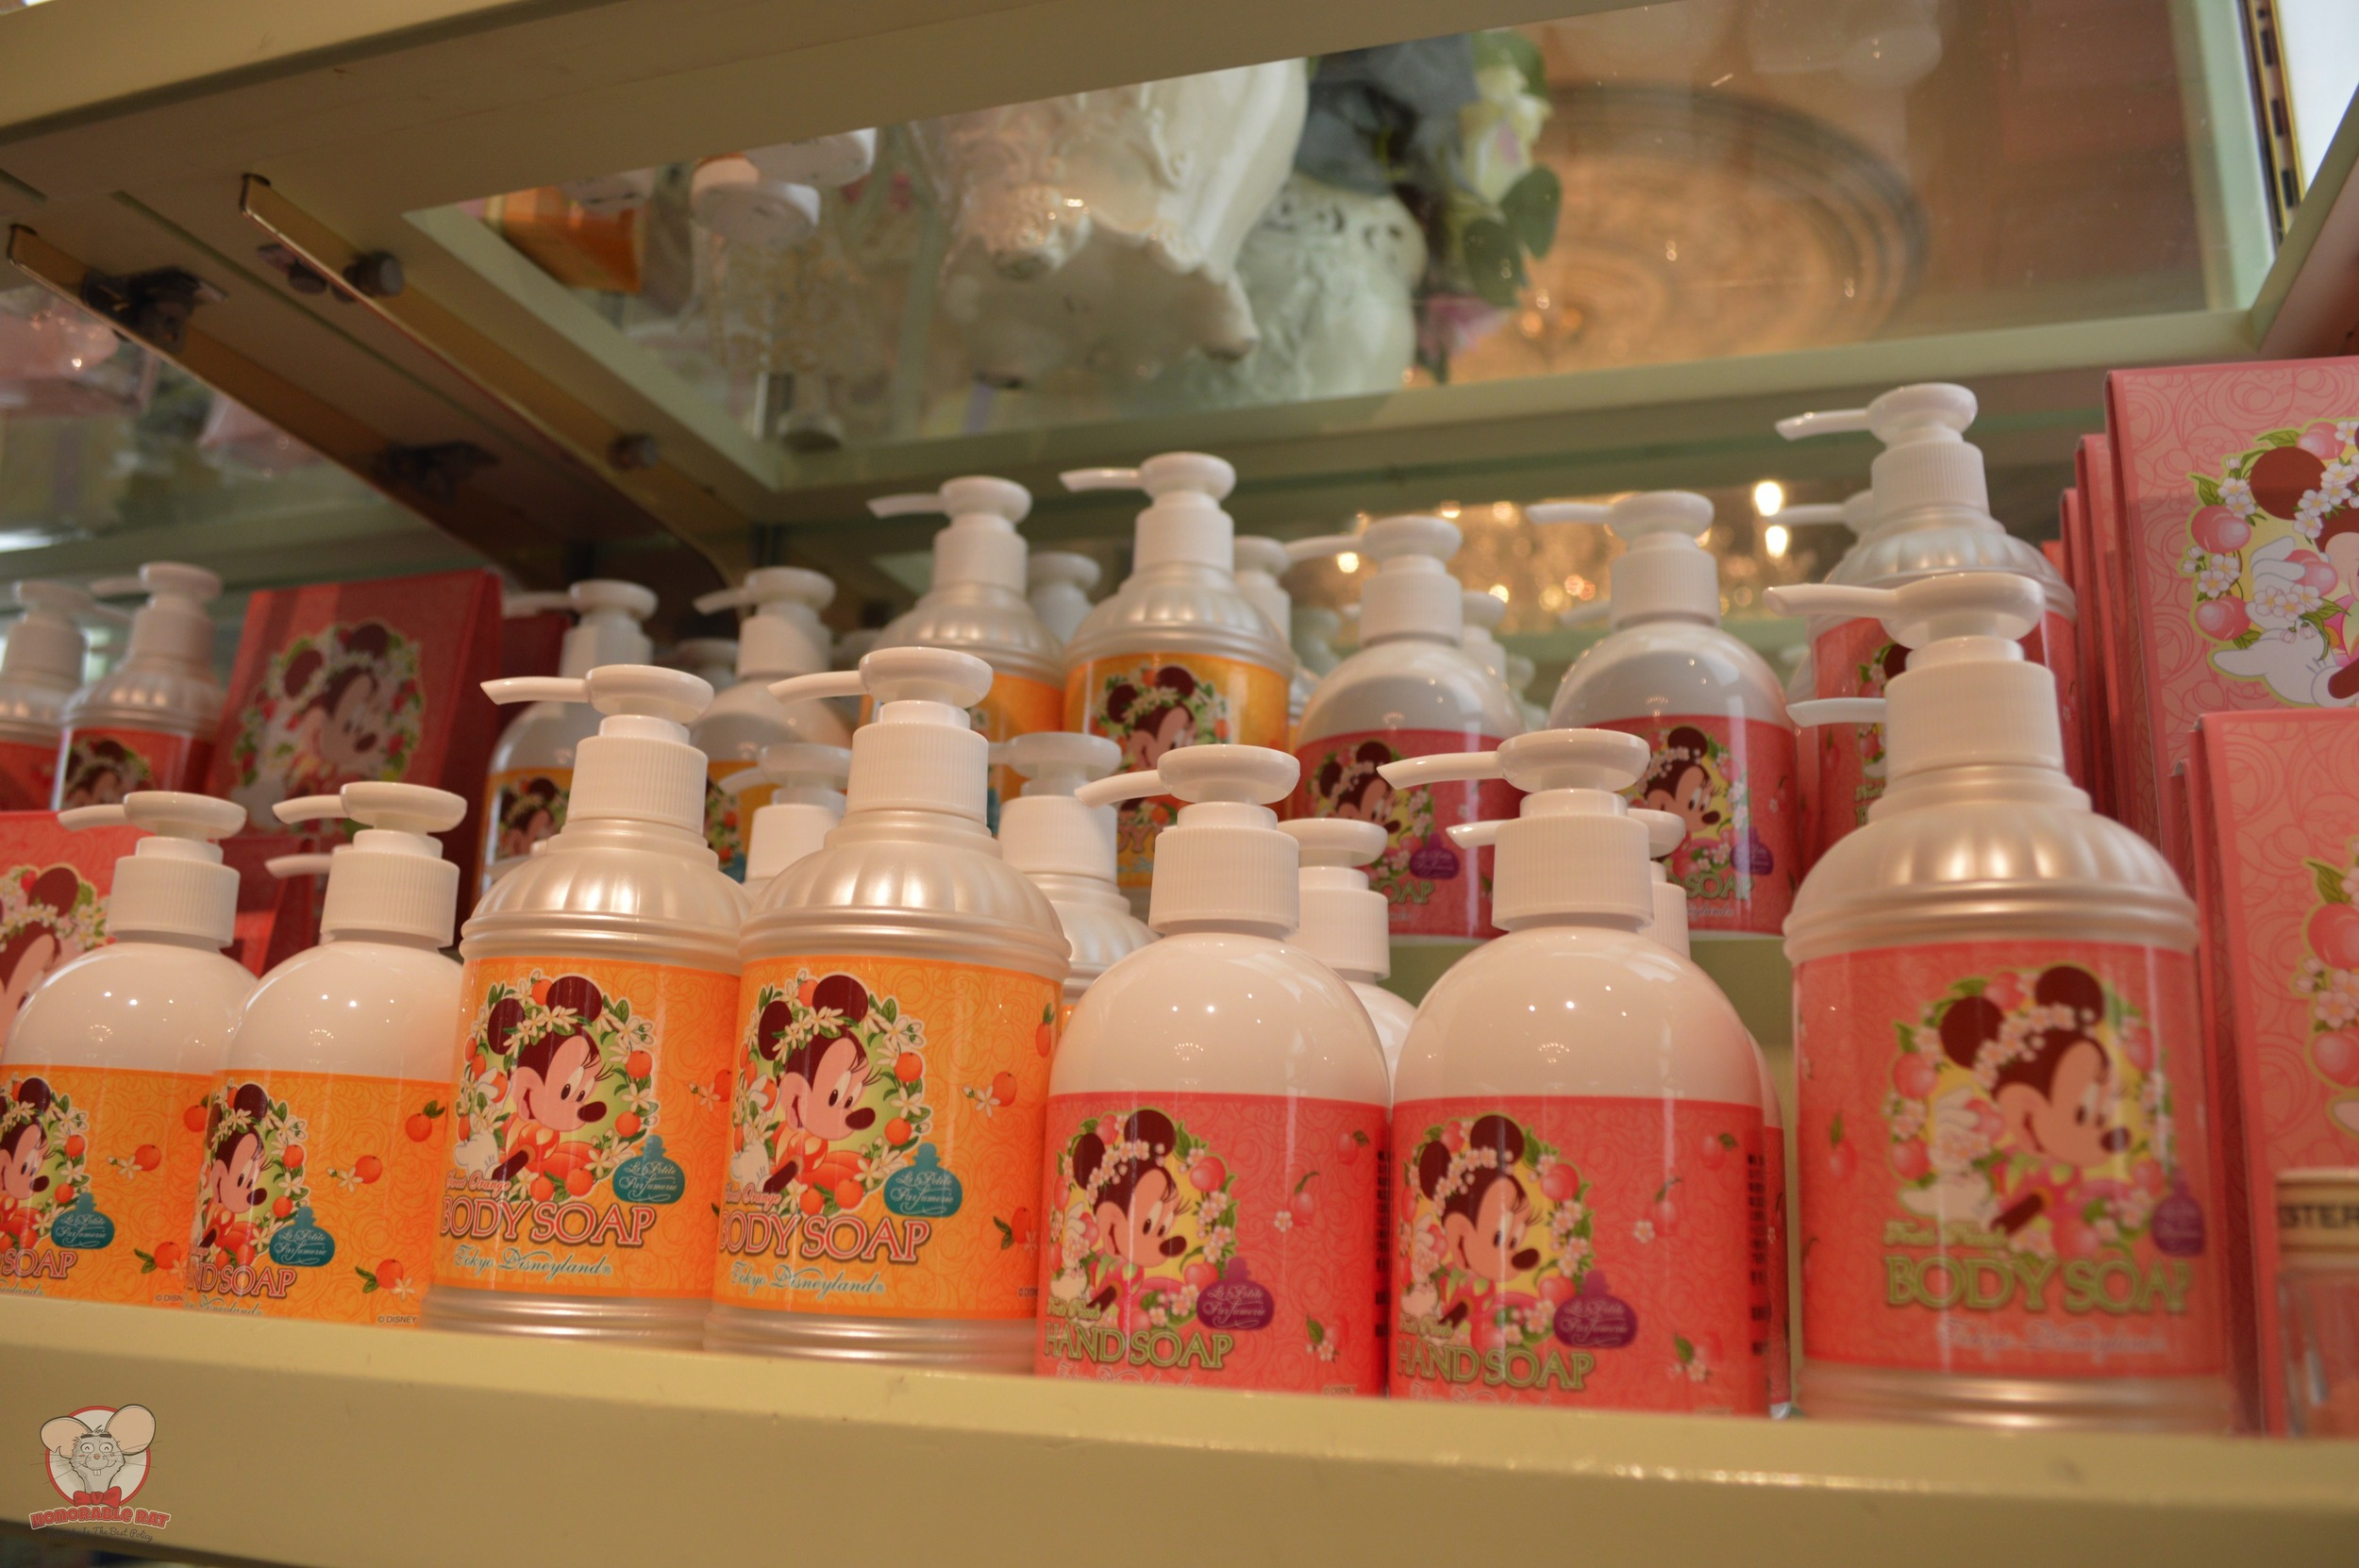 Body and Hand Soap for 1,230 yen and 820 yen respectively